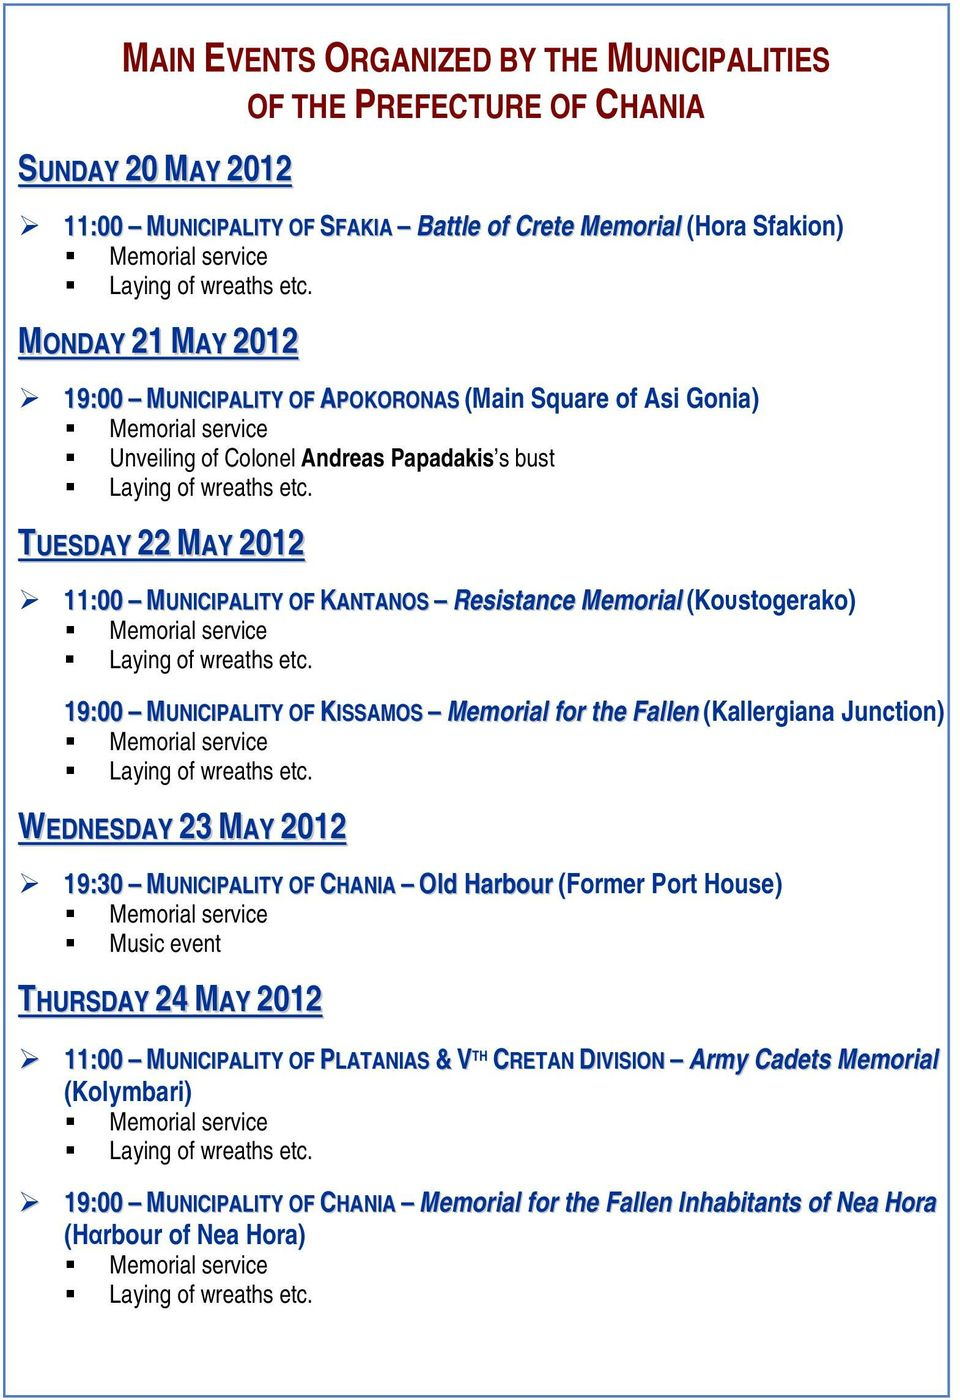 19:00 MUNICIPALITY OF KISSAMOS Memorial for the Fallen (Kallergiana Junction) WEDNESDAY 23 MAY 2012 19:30 MUNICIPALITY OF CHANIA Old Harbour (Former Port House) Music event THURSDAY 24